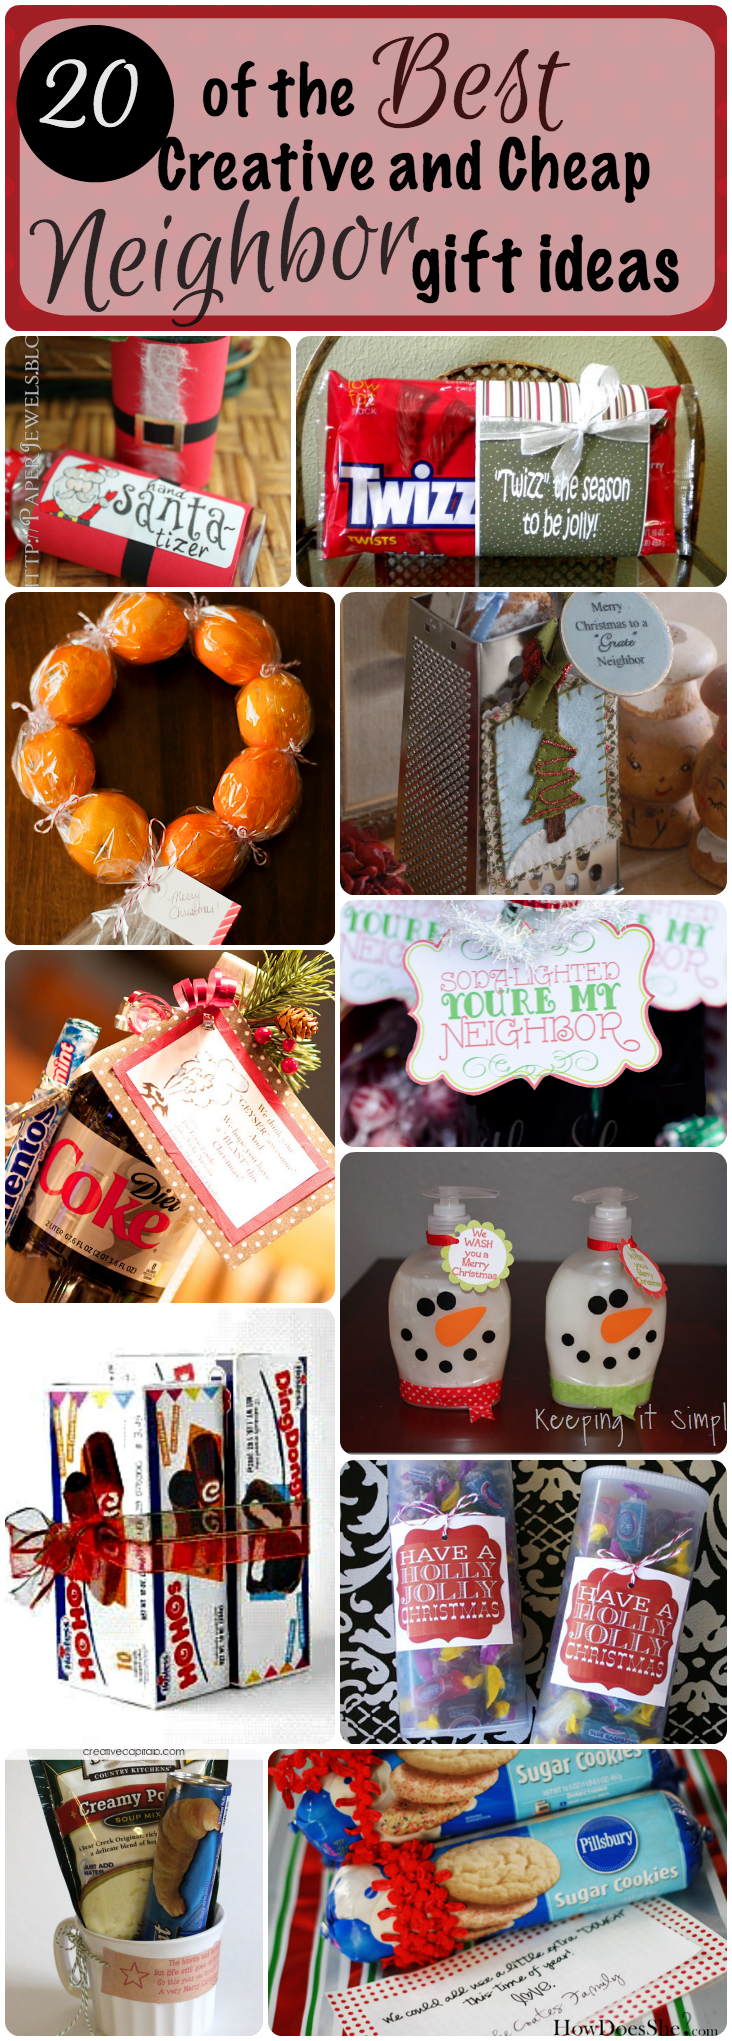 20 of the best creative and cheap neighbor gifts for christmas for Creative xmas gifts